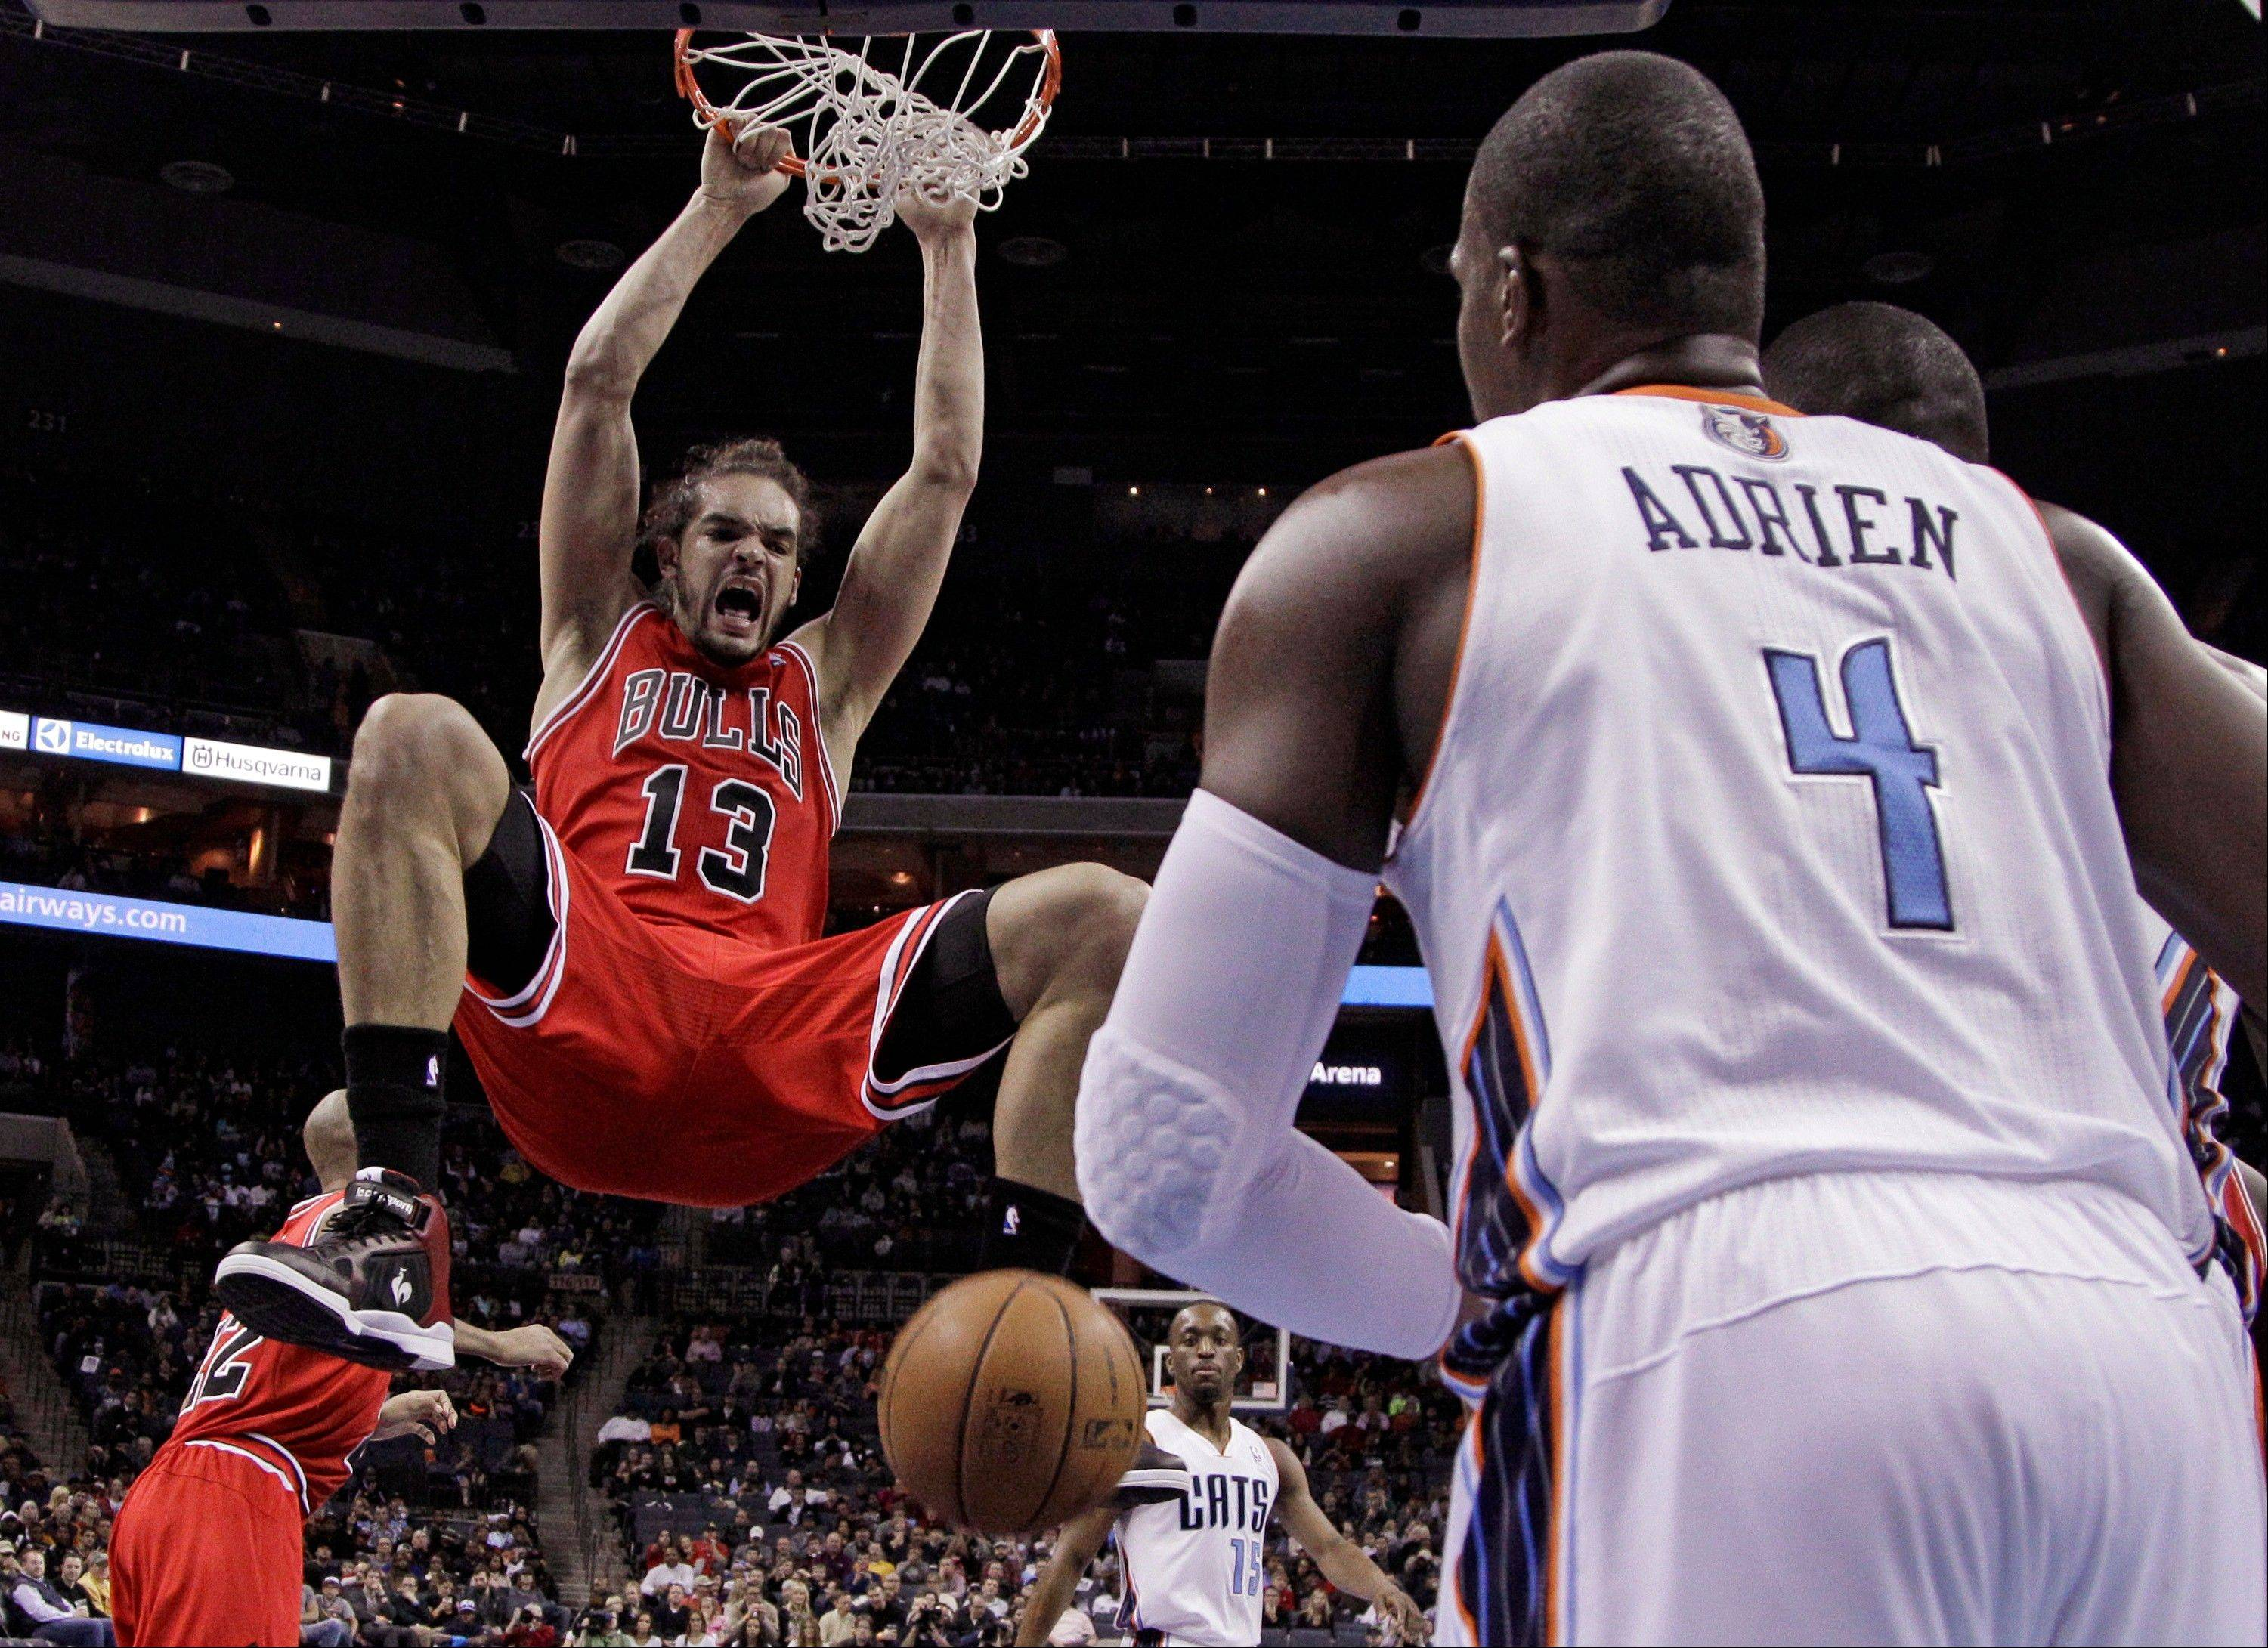 Bulls' Joakim Noah (13) dunks as Charlotte Bobcats' Jeff Adrien (4) looks on during the first half of an NBA basketball game in Charlotte, N.C., Friday, Feb. 22, 2013.